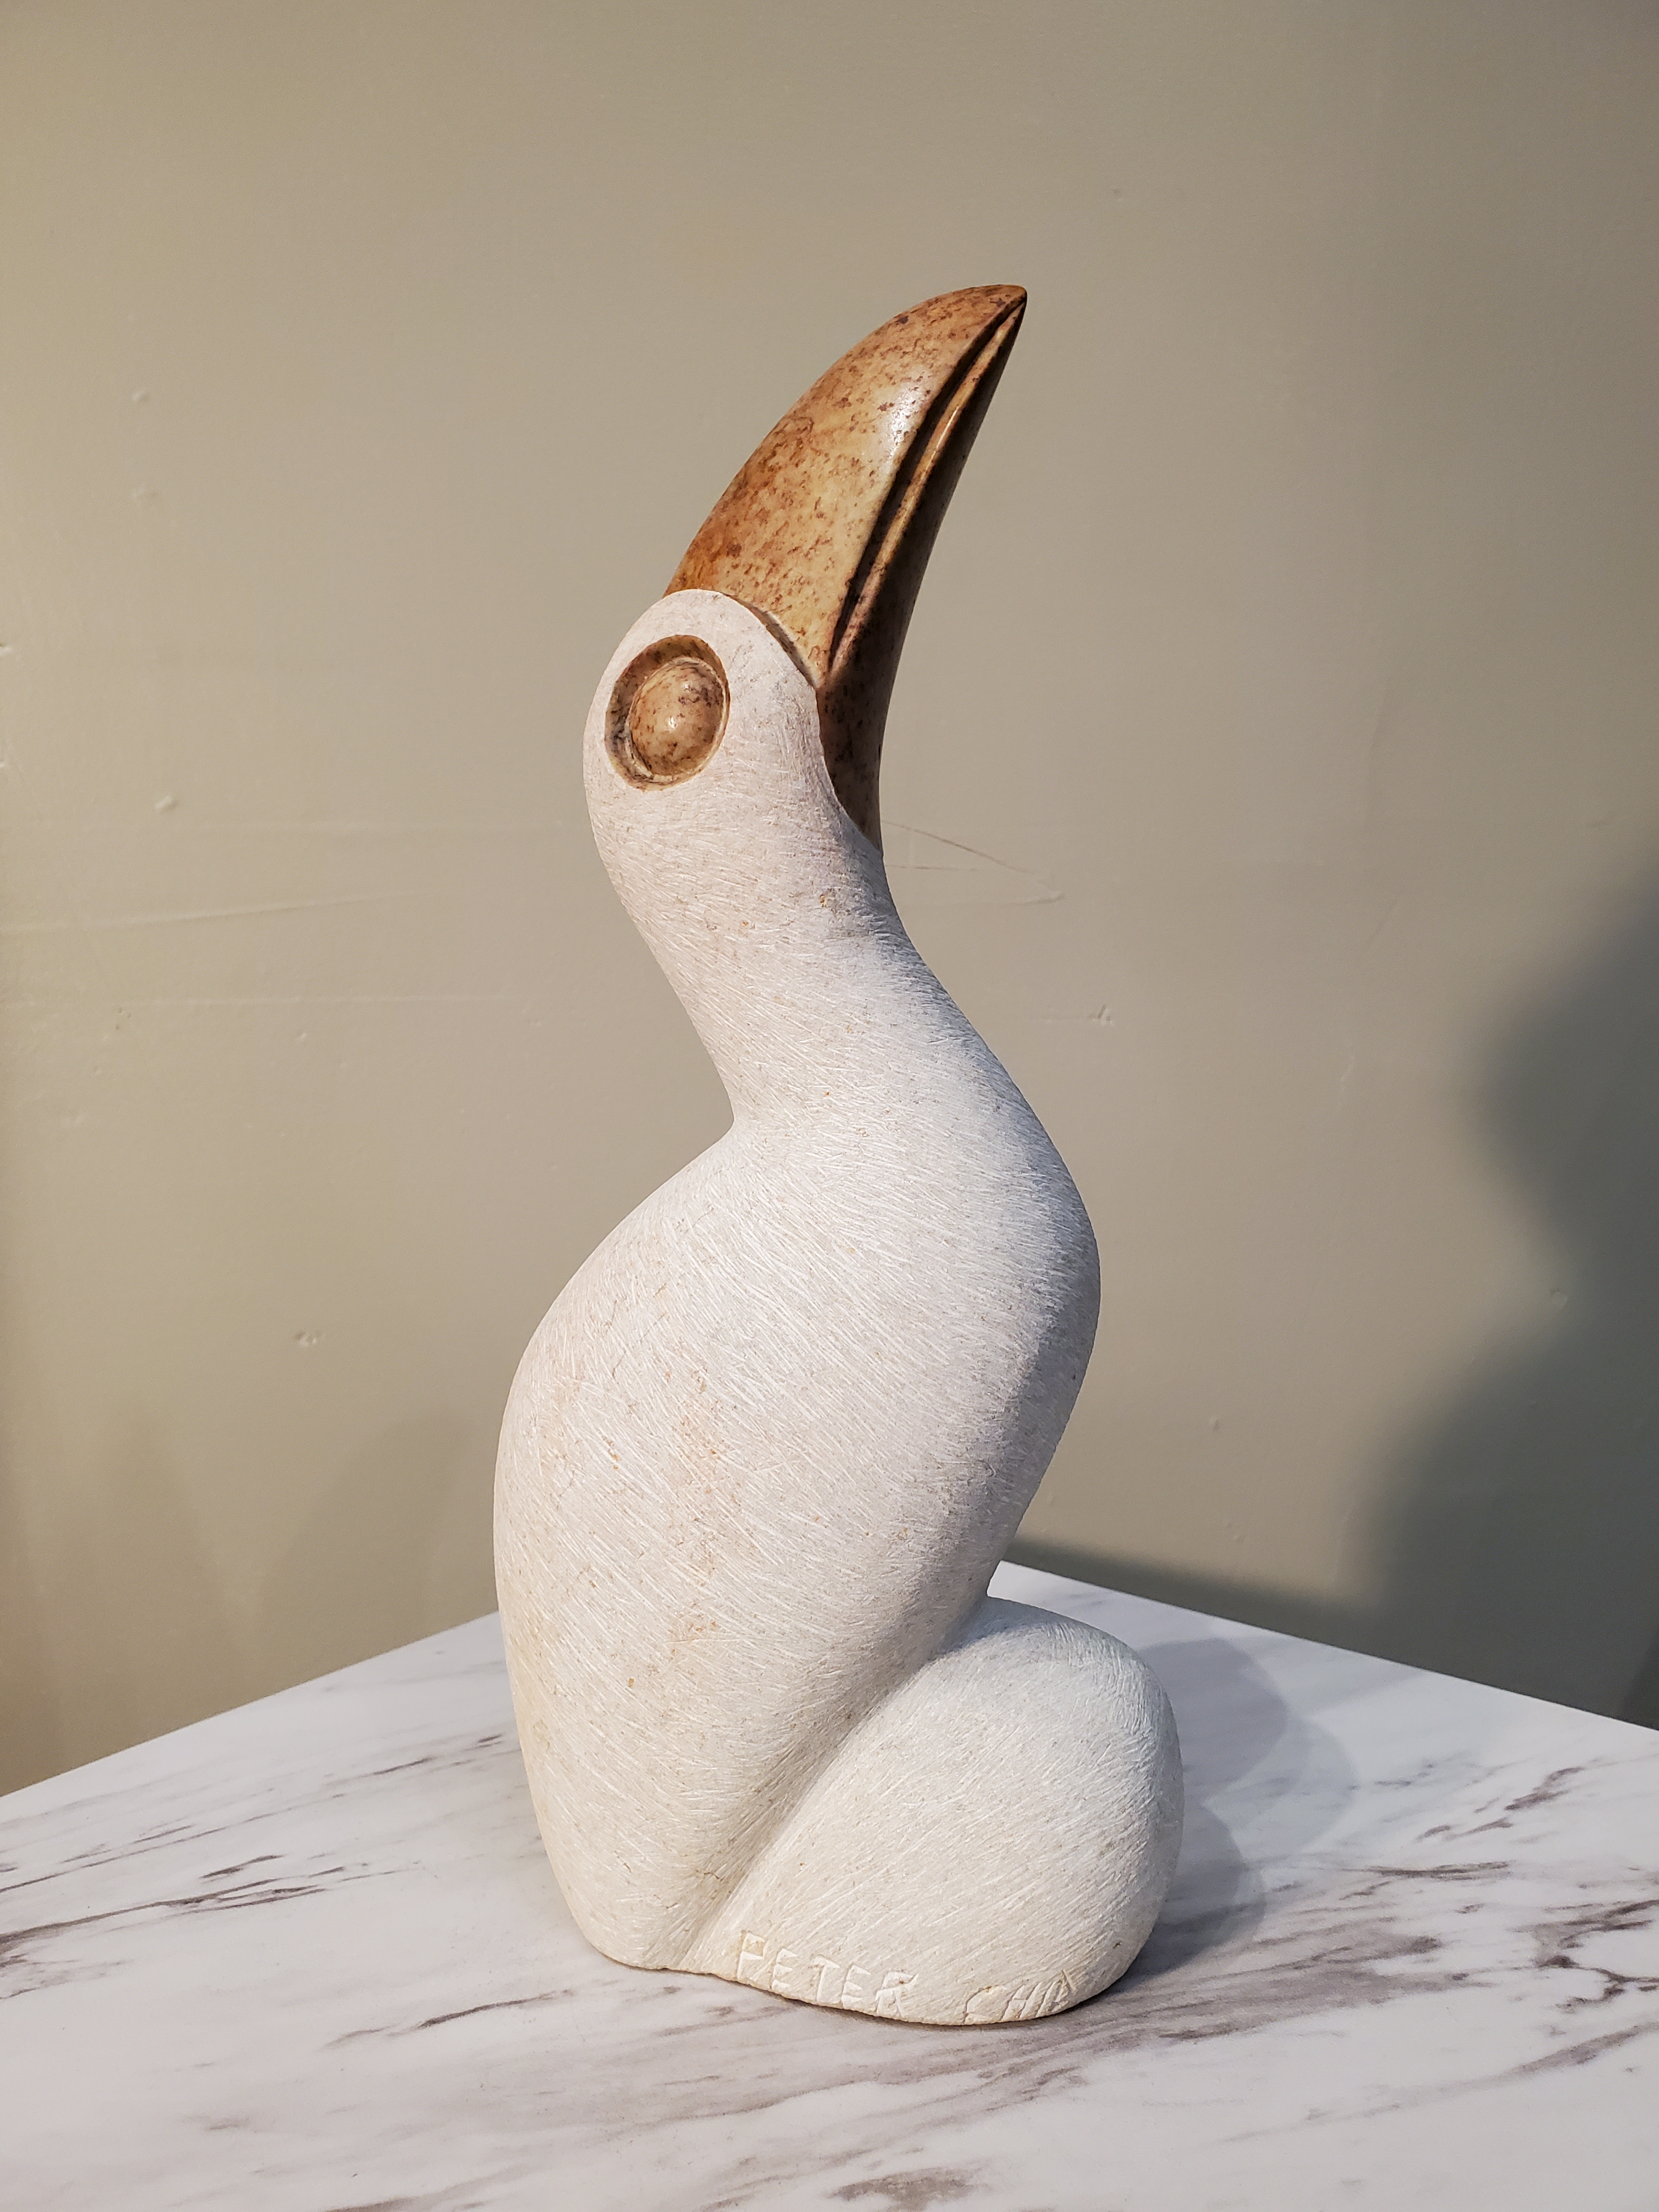 A beautiful perched white pelican looking inquisitively upward. This bird was sculpted from a single piece of opal stone. The white bird is accentuated by a bronze colored beak and eyes. Colors included: White, Bronze.